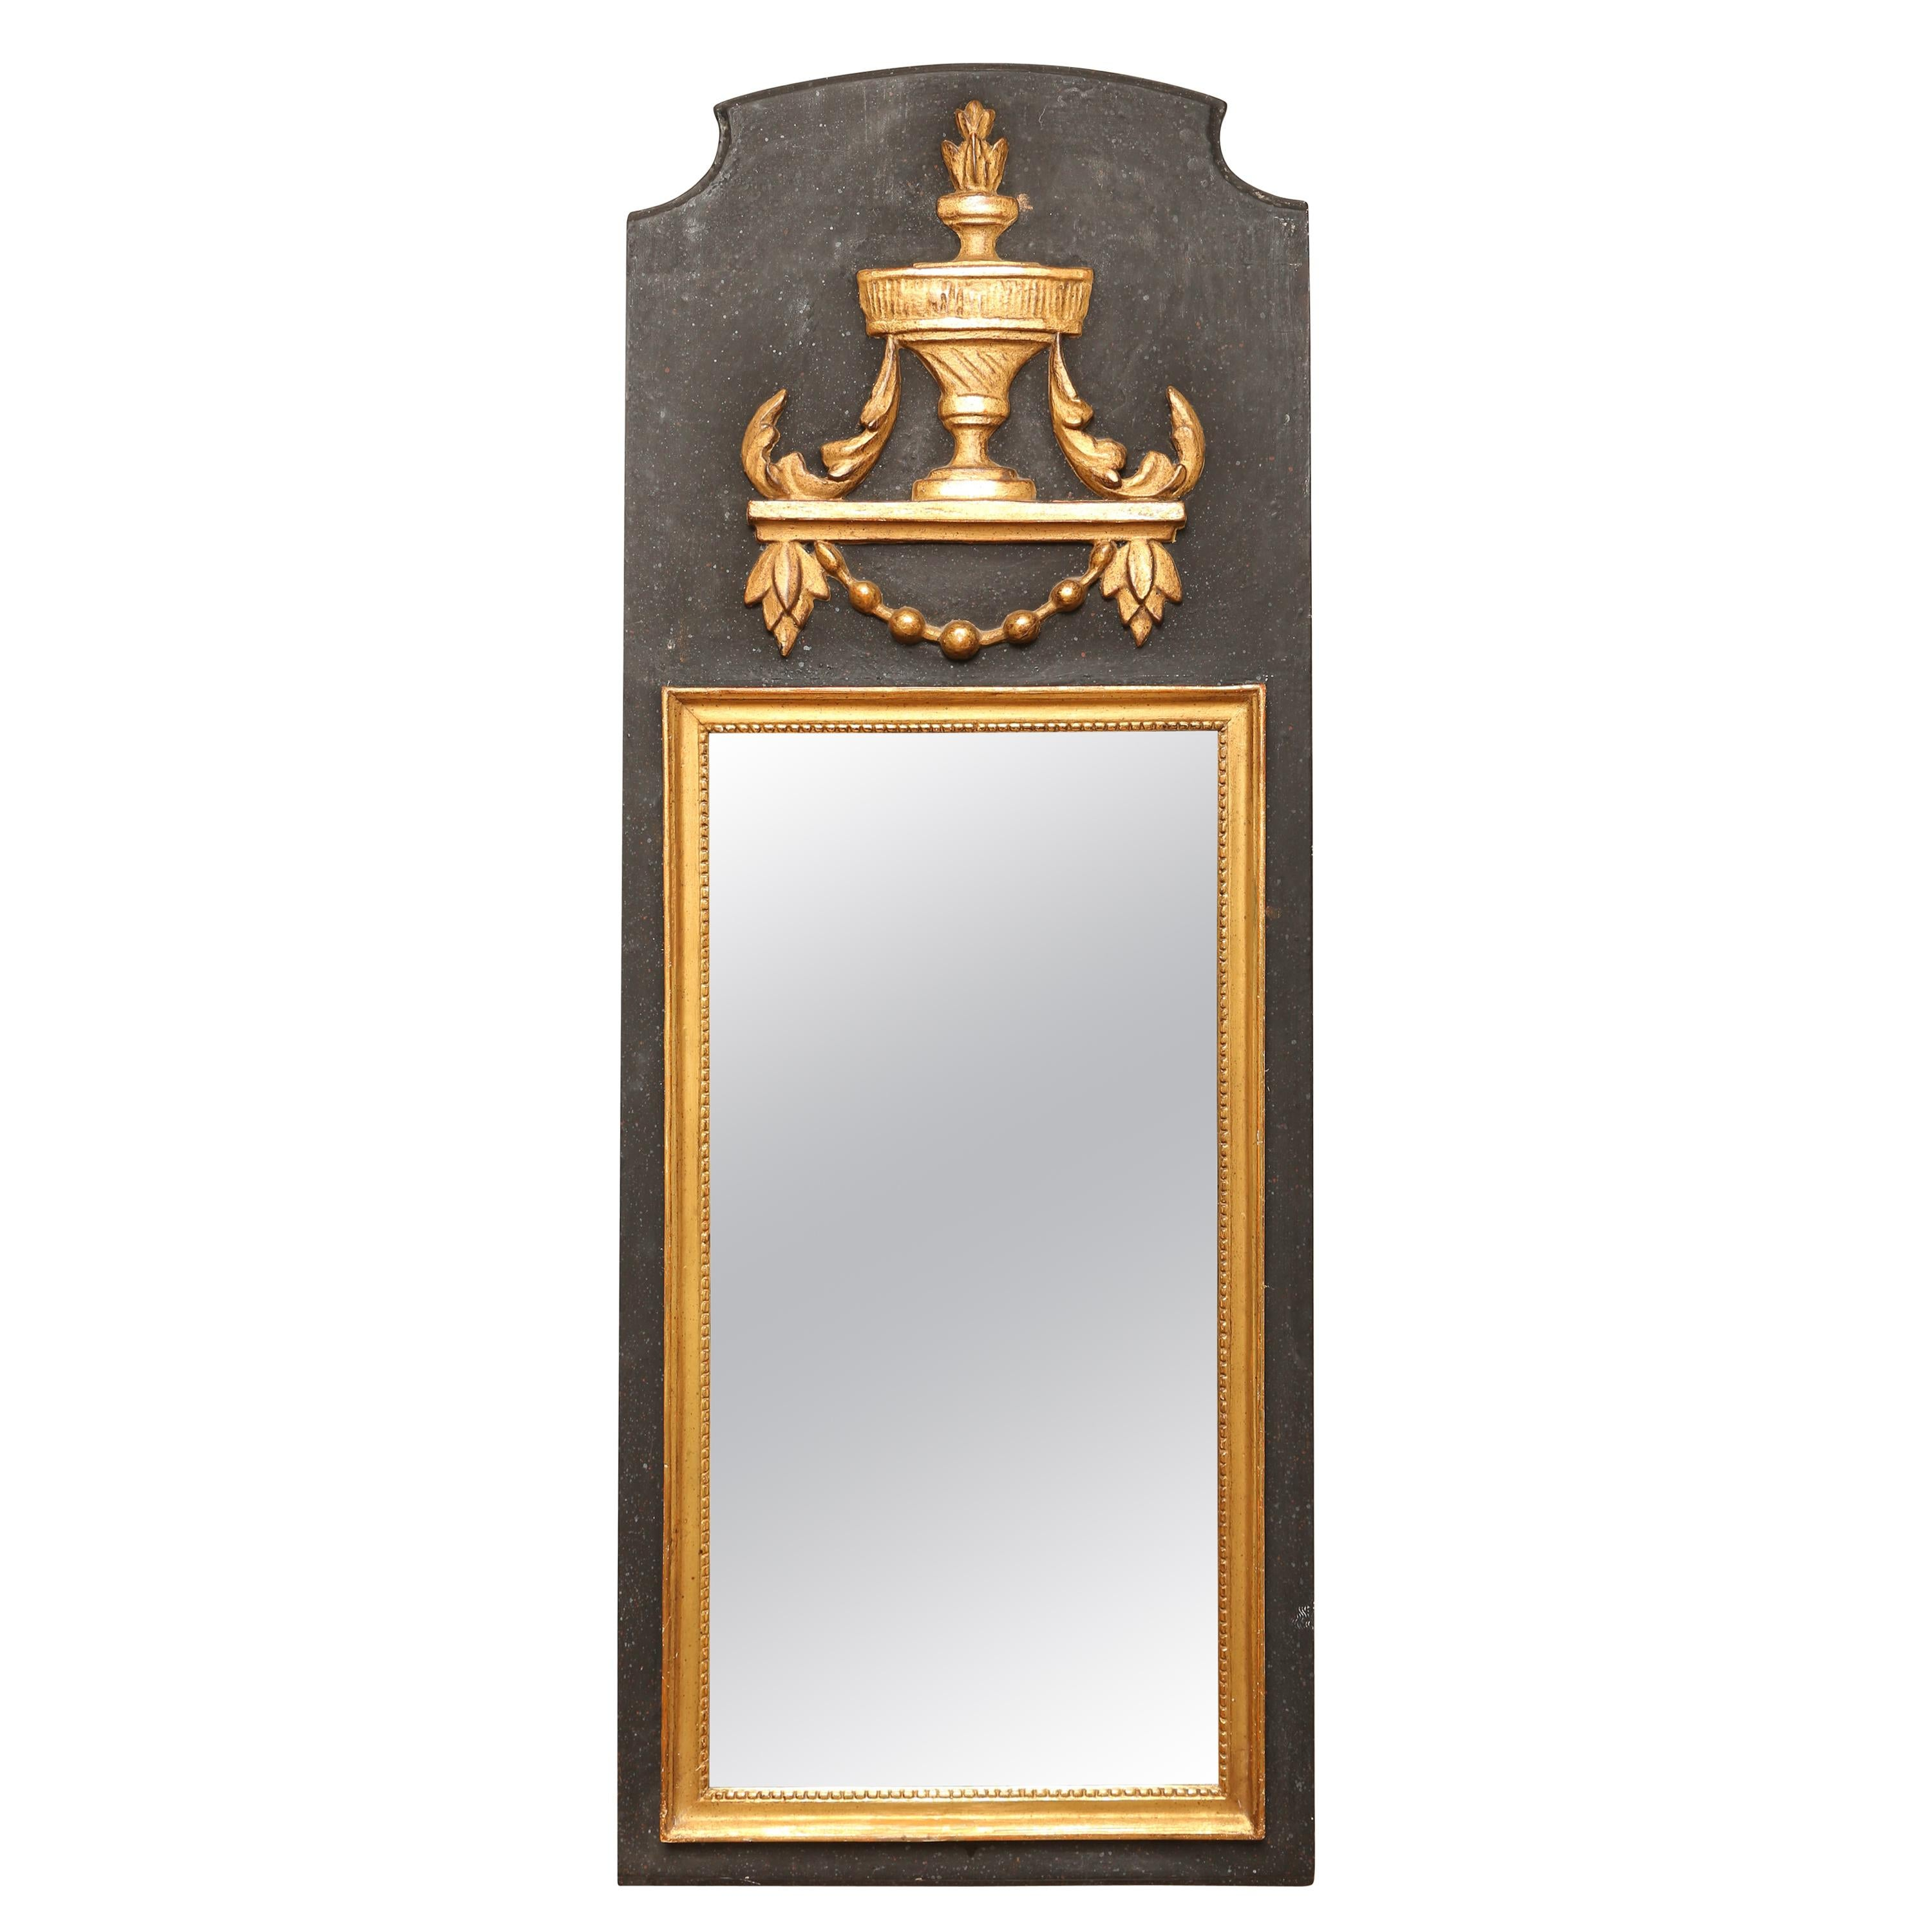 Neoclassical Style Painted and Gilded Mirror